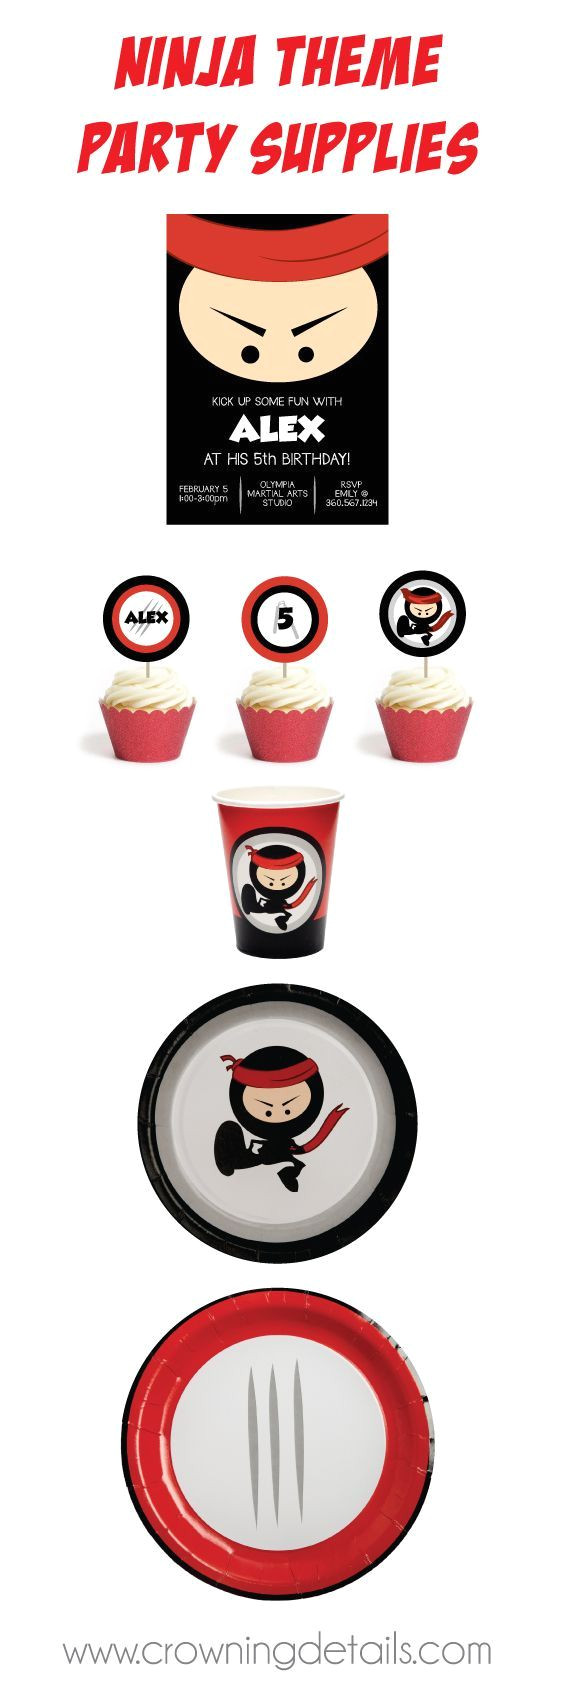 ninja party supplies browse this ninja party theme in our online store ninjapartysupplies